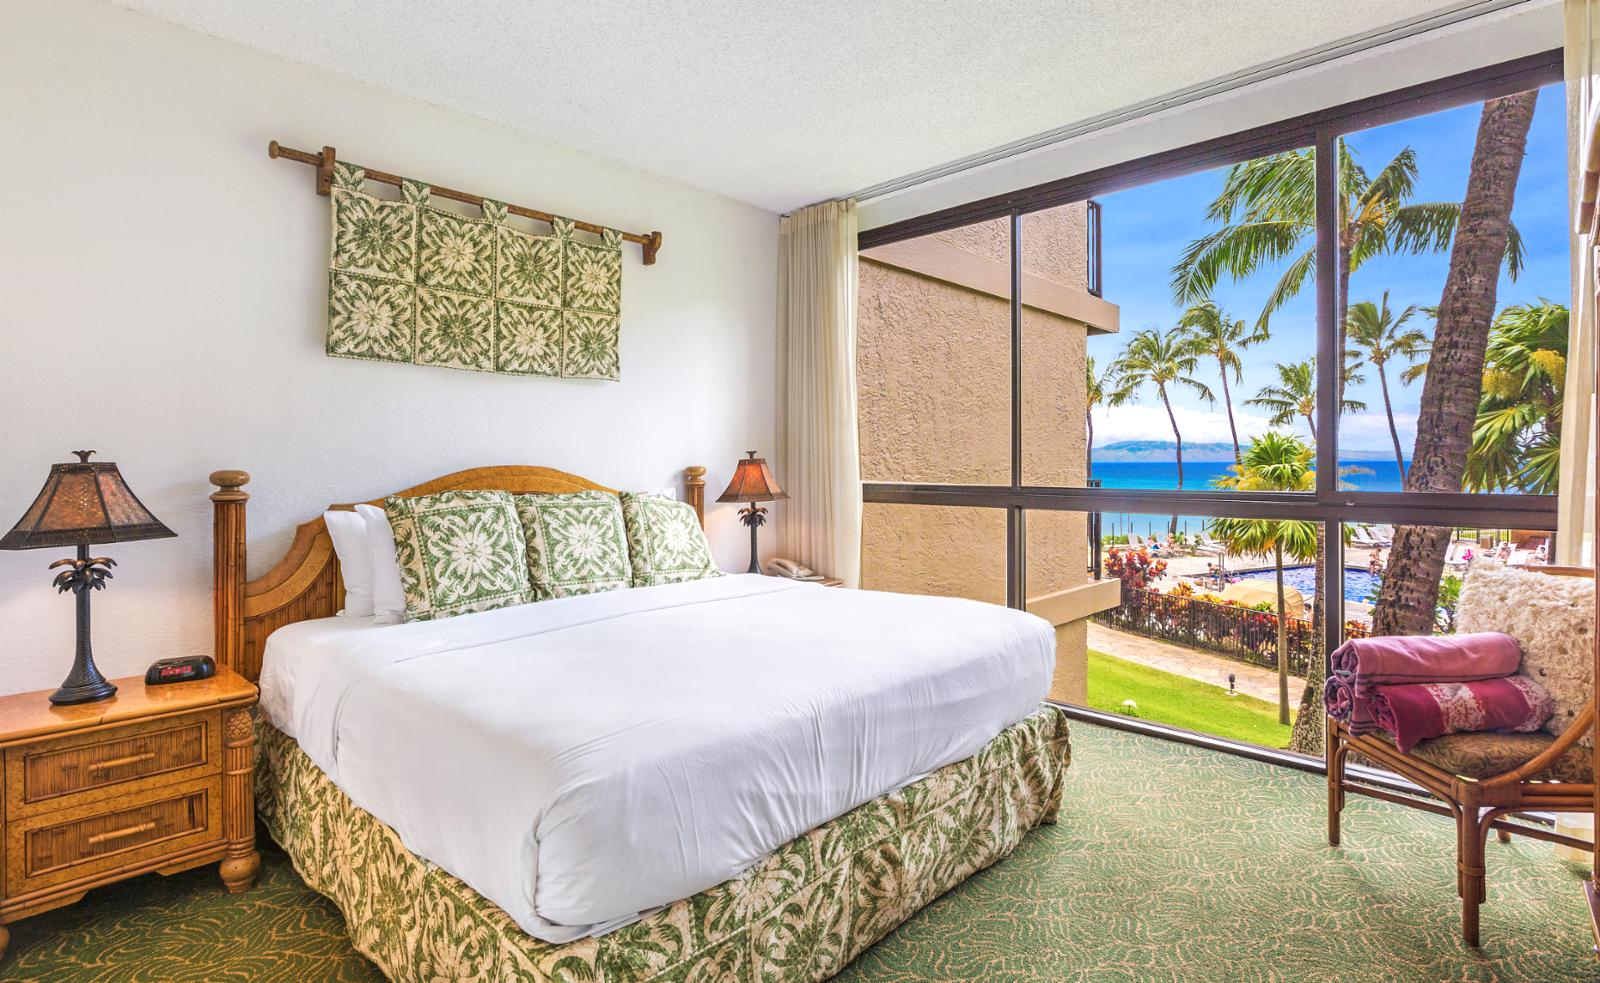 LARGE comfortable master bedroom with ocean views every morning